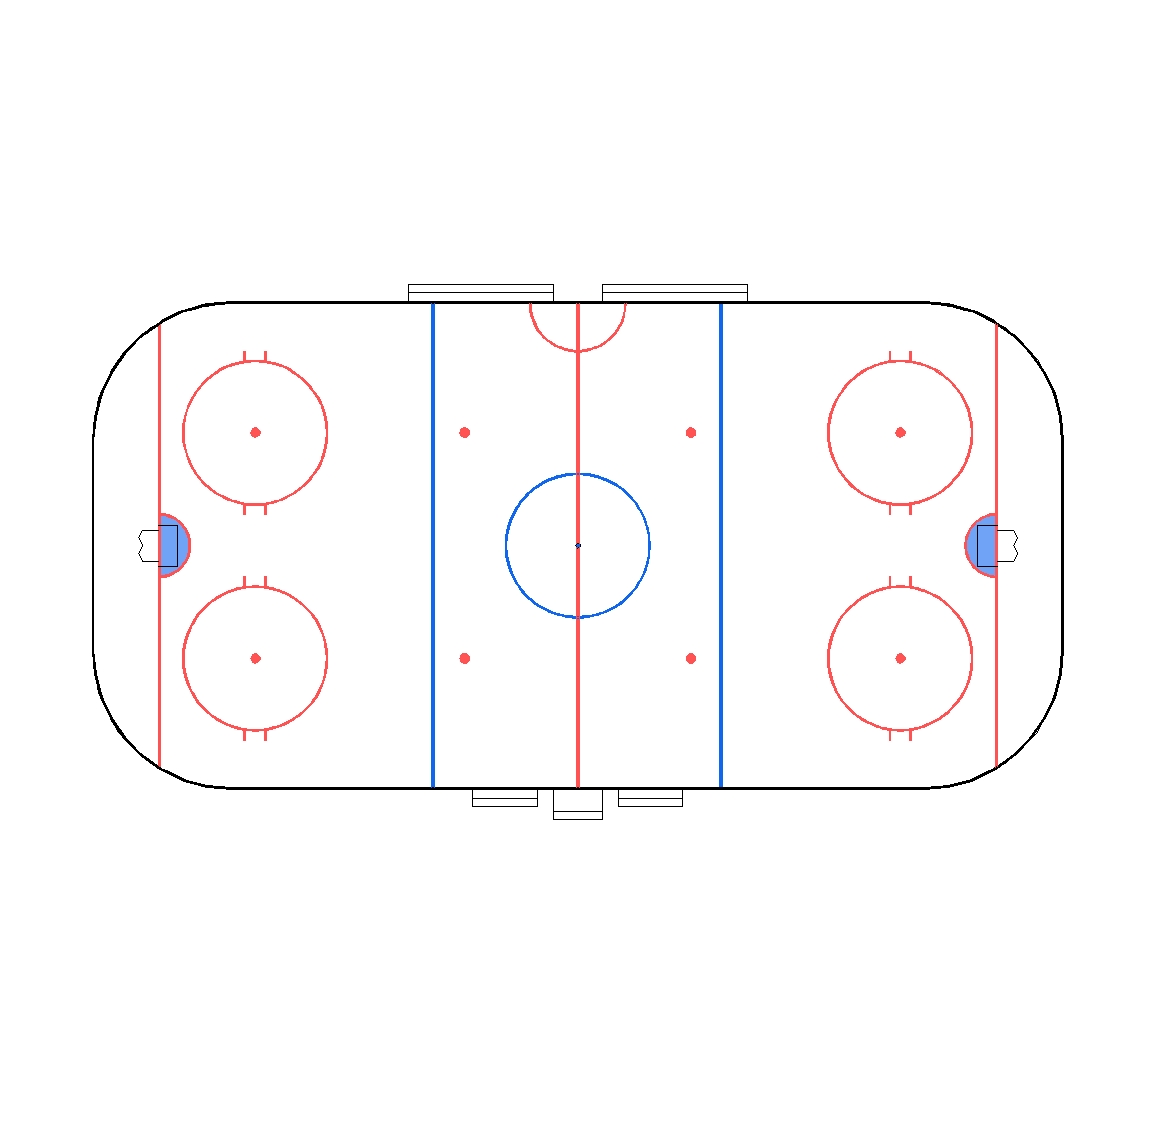 hight resolution of 1160x1146 cad plan of an ice hockey rink drawing of ice hockey rink